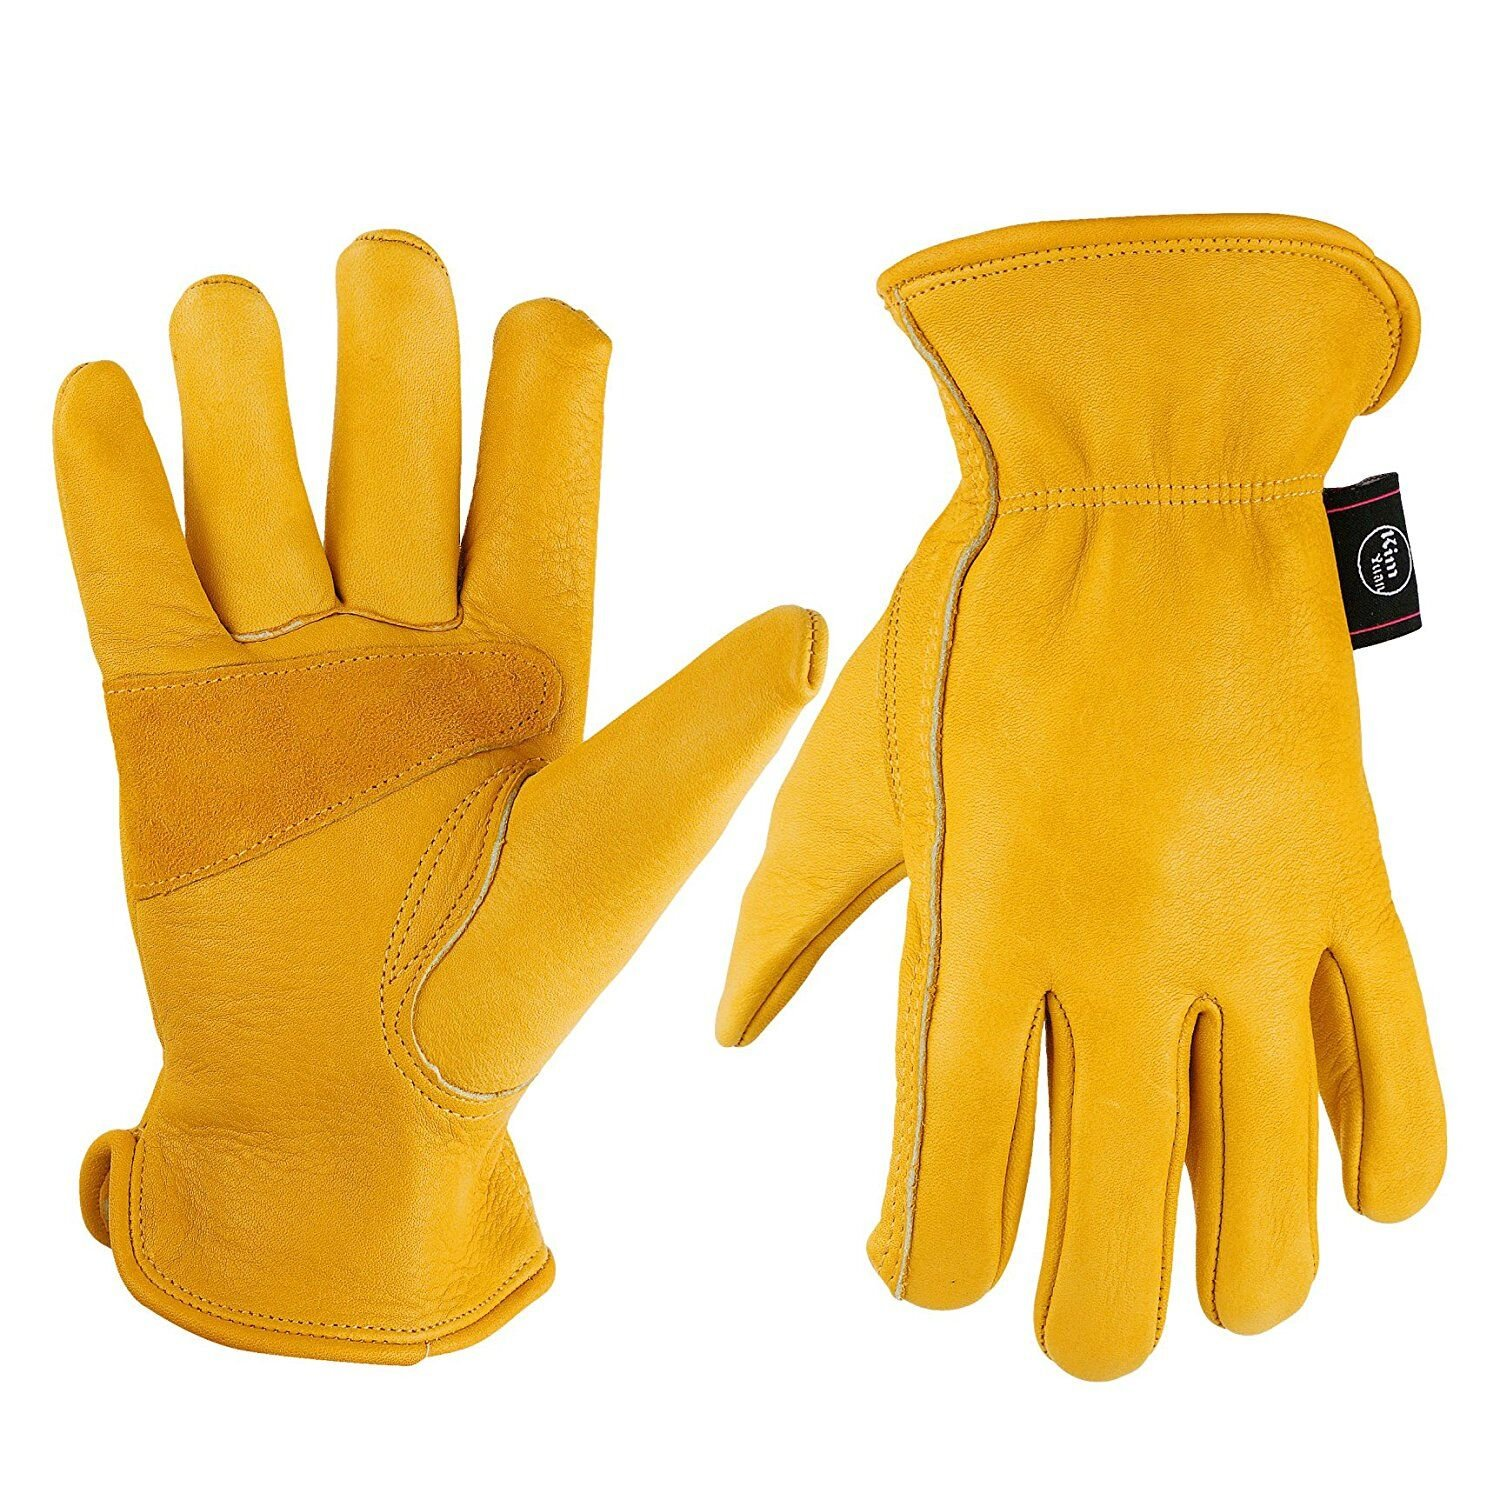 KIM YUAN Leather Work Gloves, with Wrist, Wear-Resisting Puncture-Proof For Yard Work, Gardening, Farm, Warehouse, Construction, Motorcycle, Men & Women Medium